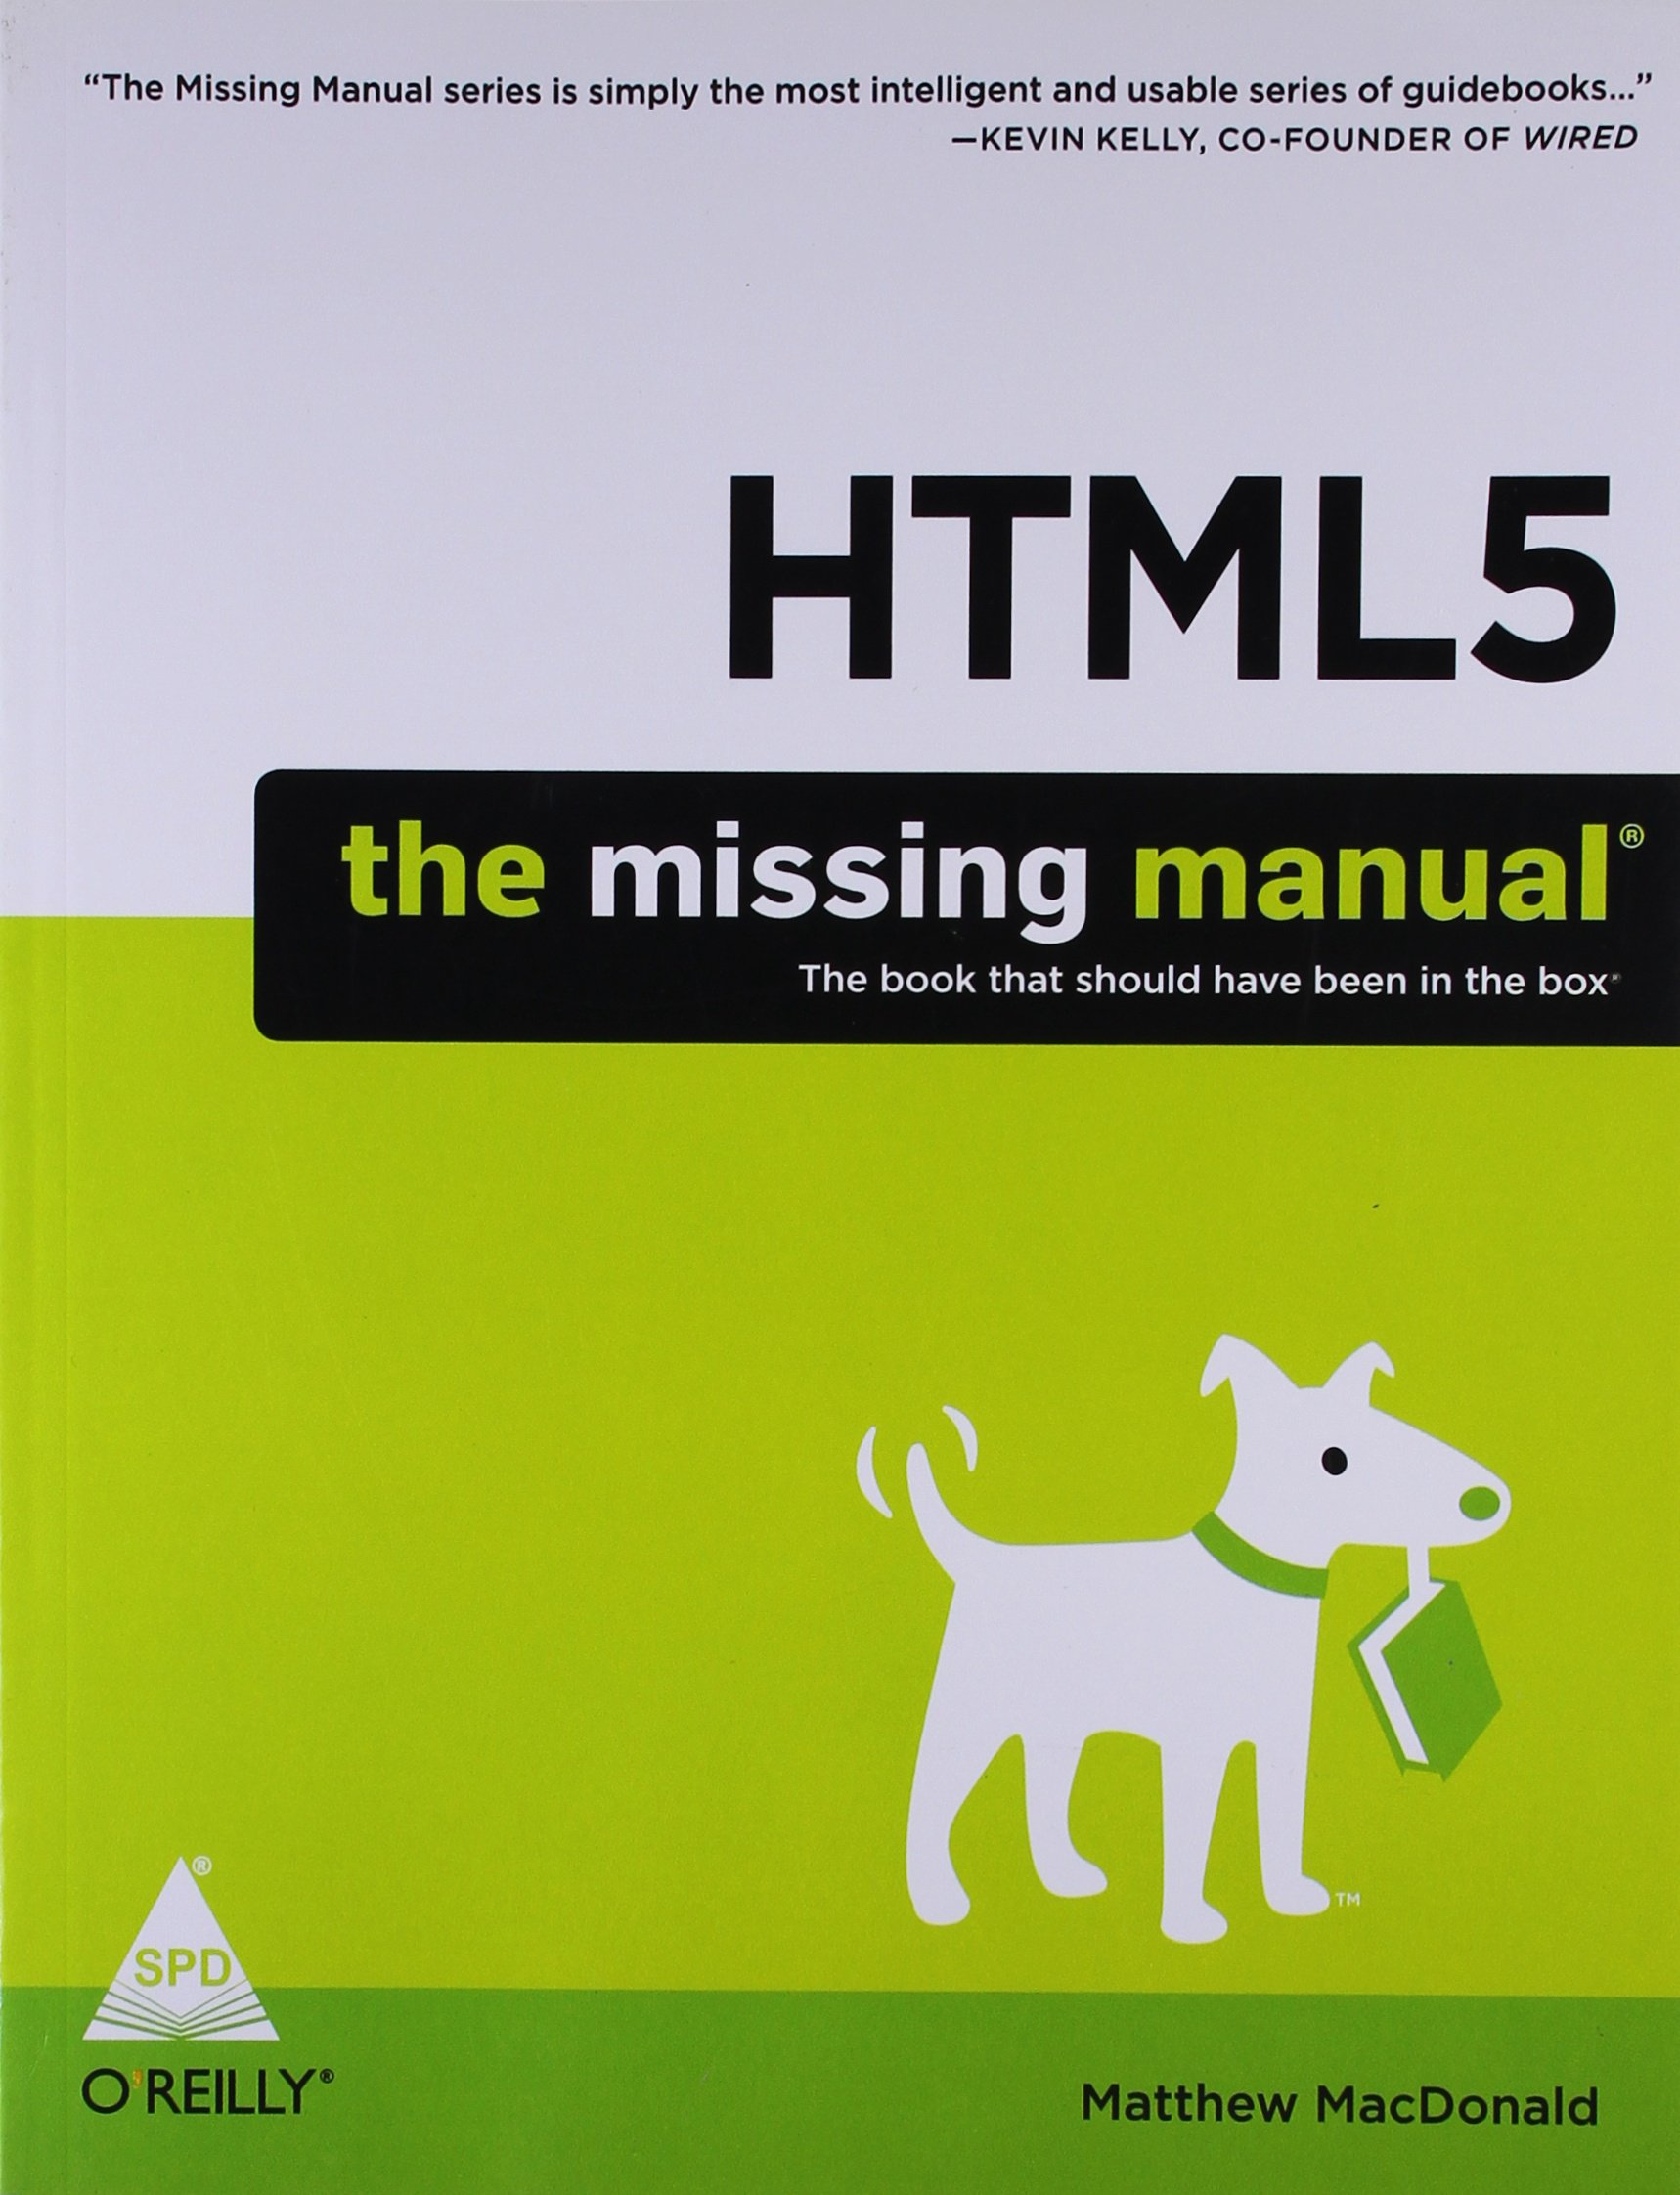 Buy HTML5: The Missing Manual Book Online at Low Prices in India   HTML5:  The Missing Manual Reviews & Ratings - Amazon.in